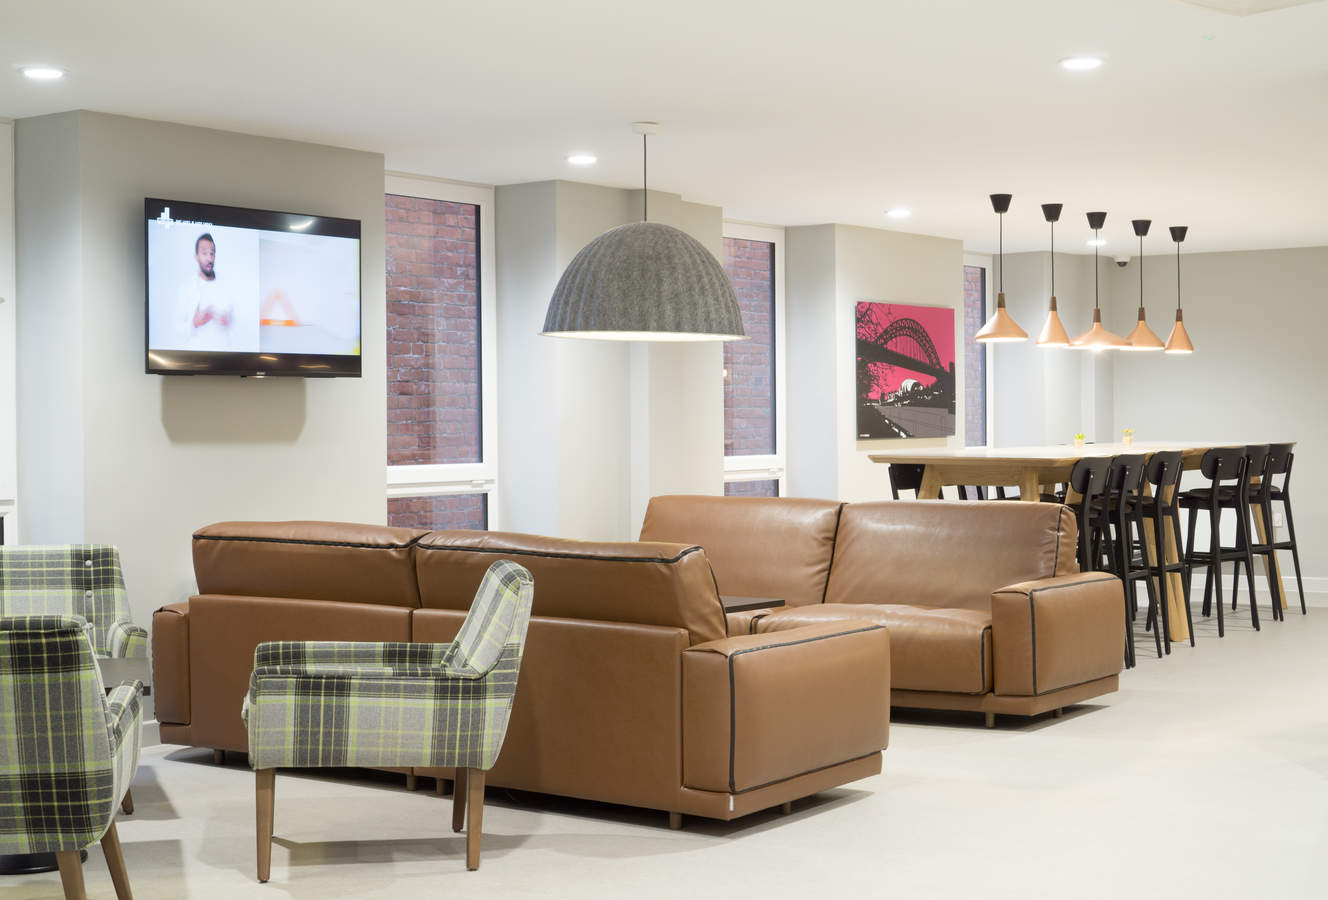 3.residents_lounge